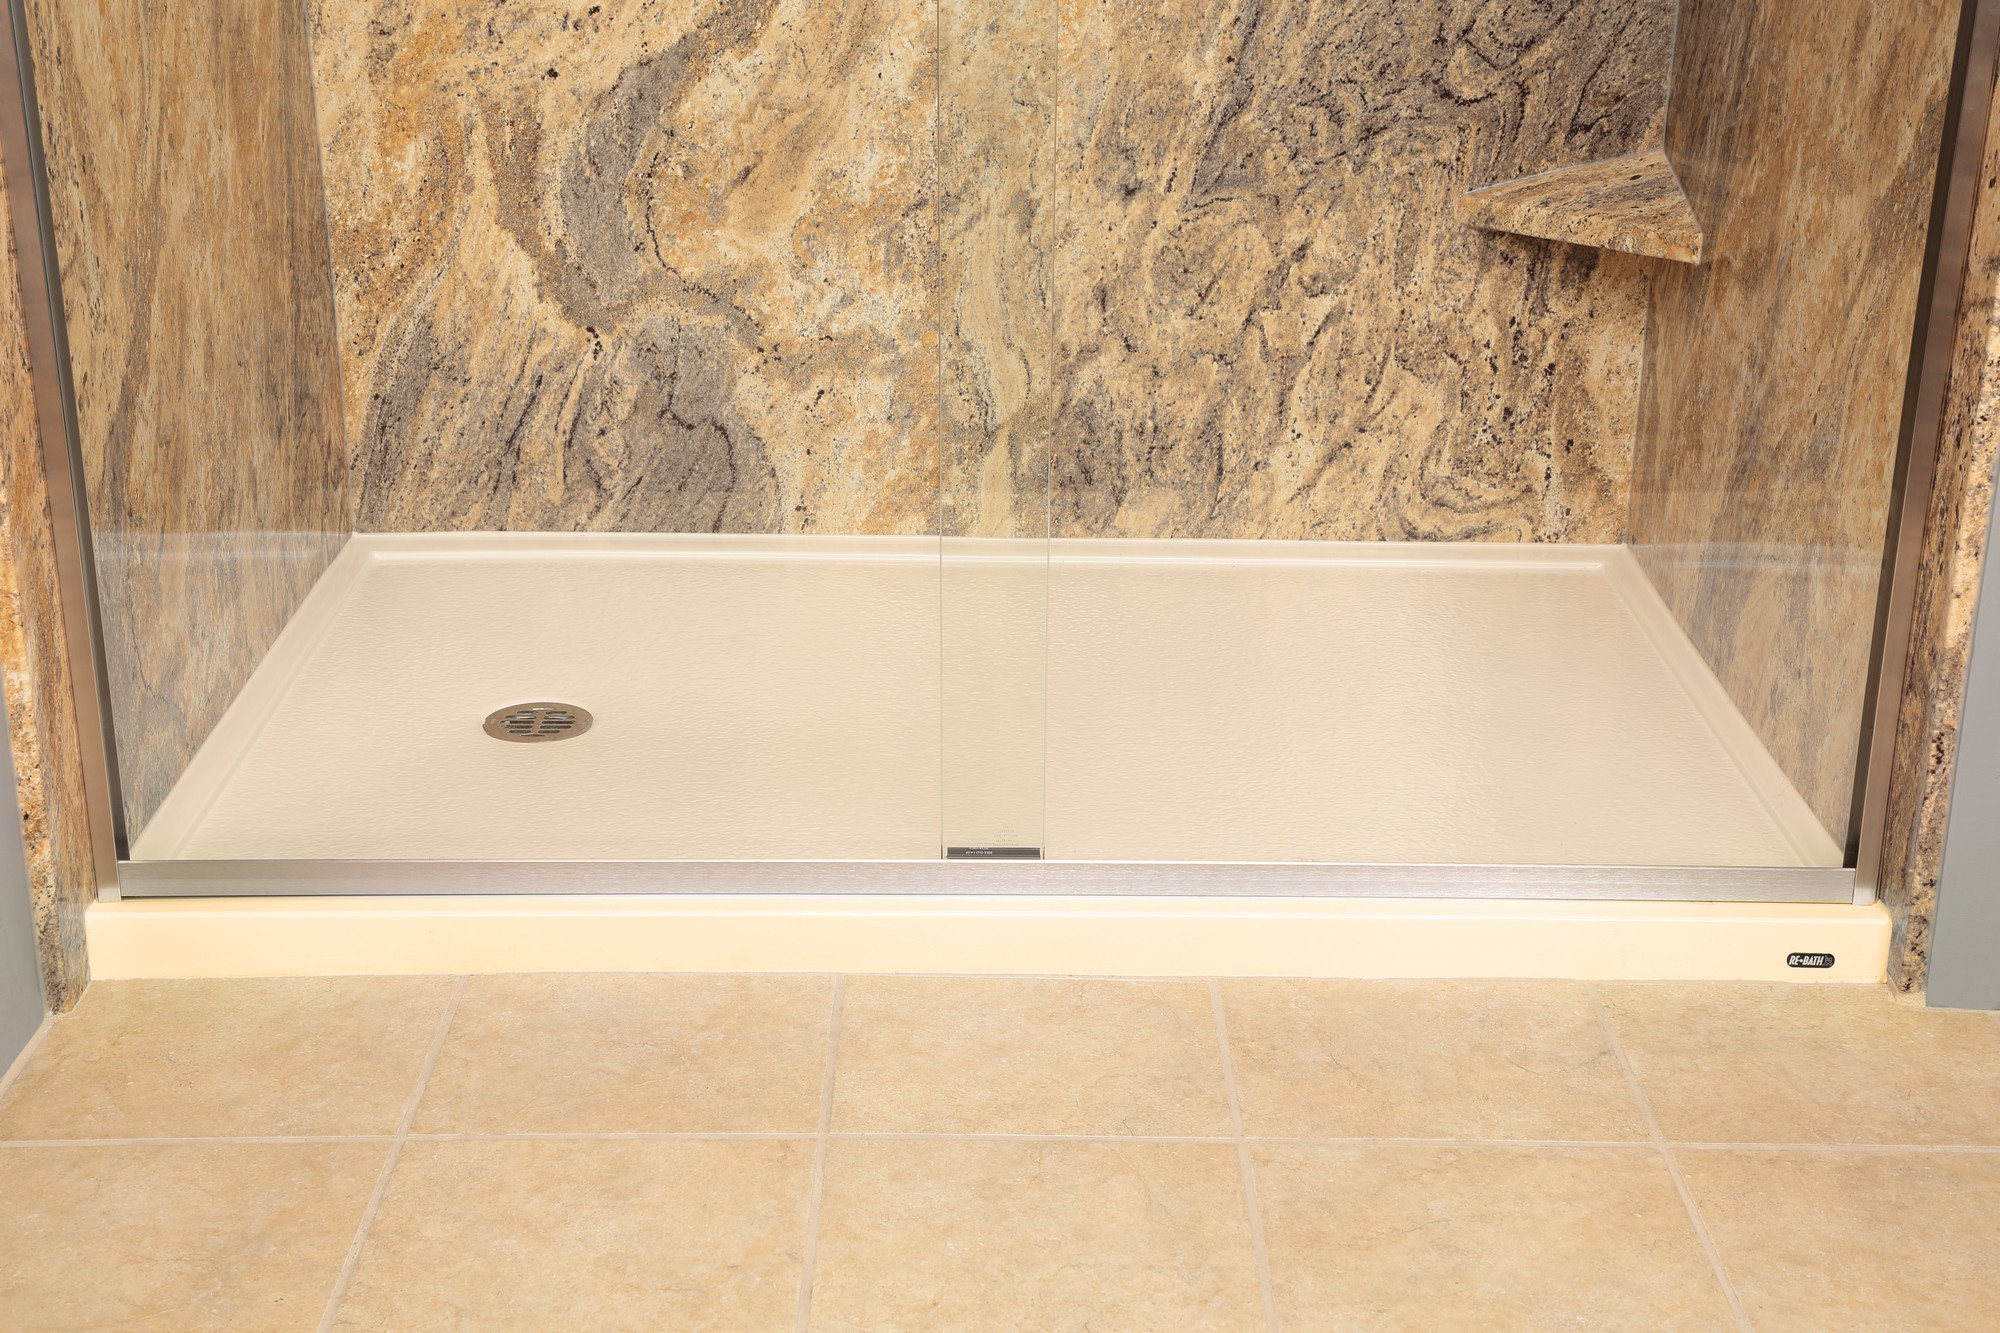 ReBath Northeast Announces New Tub Surround Colors and Patterns